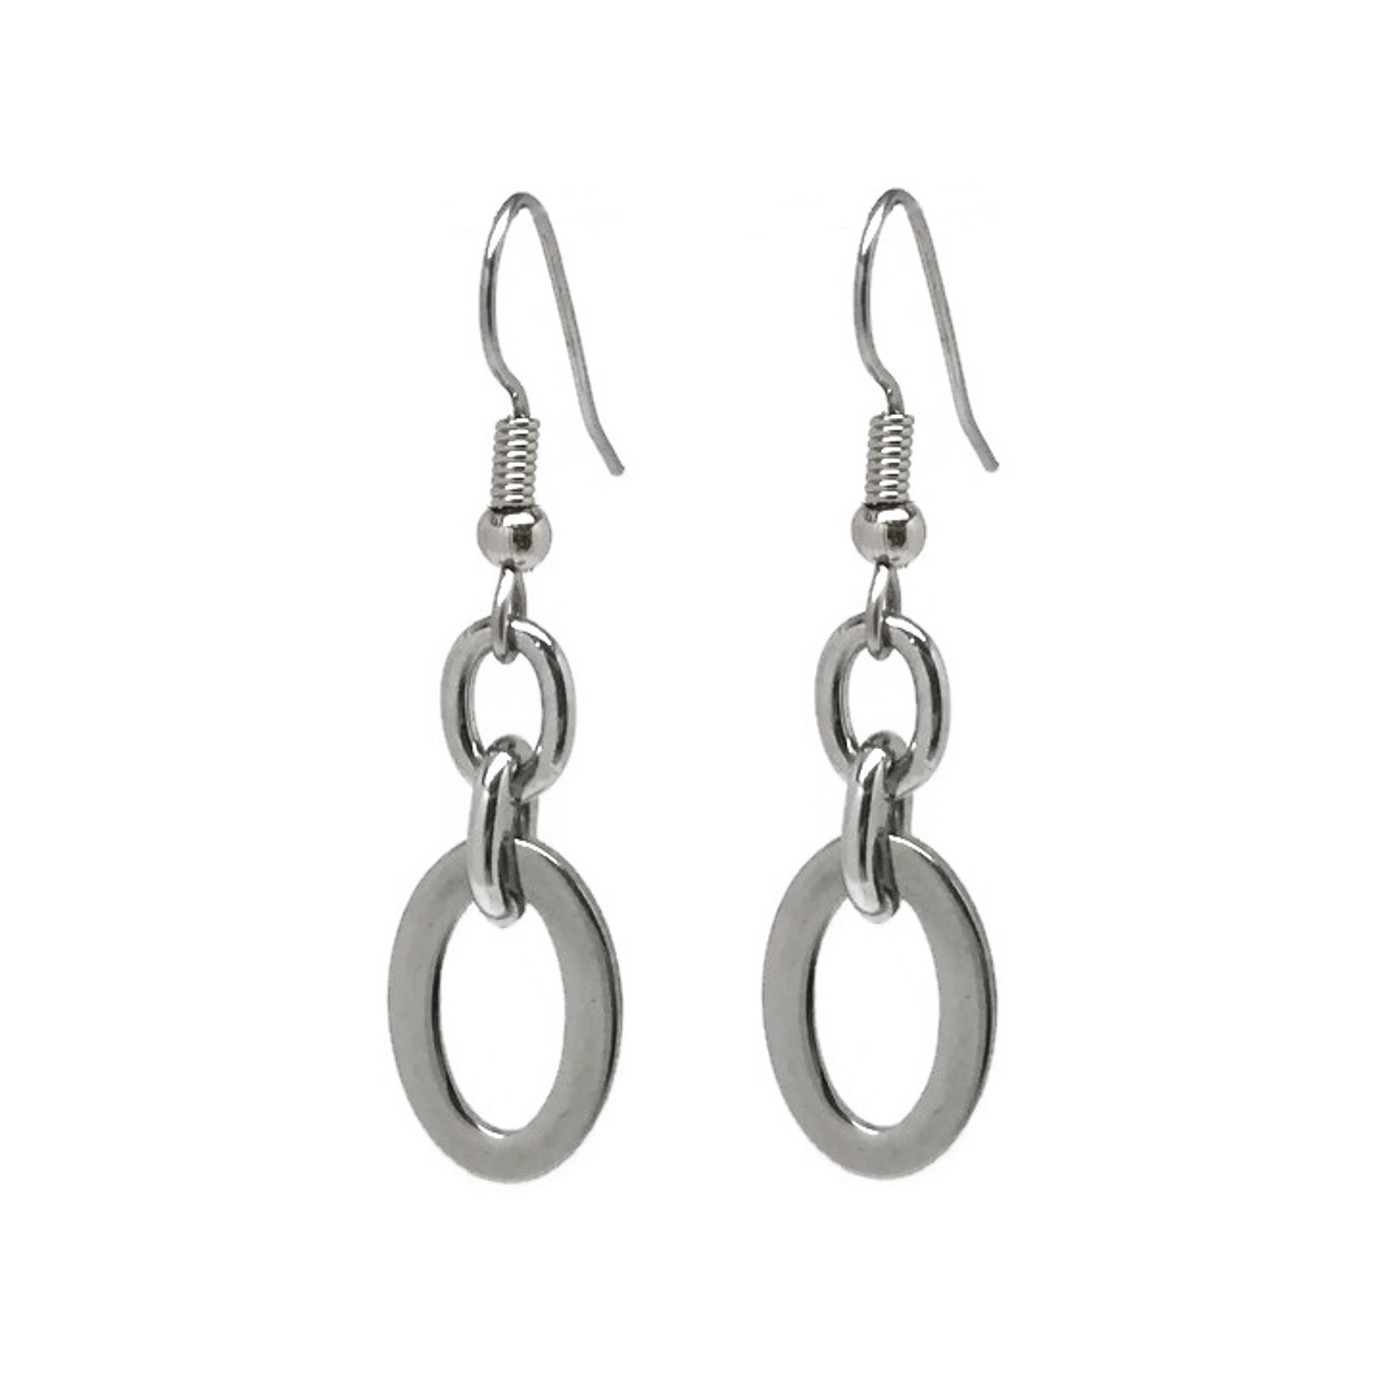 Hypoallergenic Classy Silver Earrings For Her